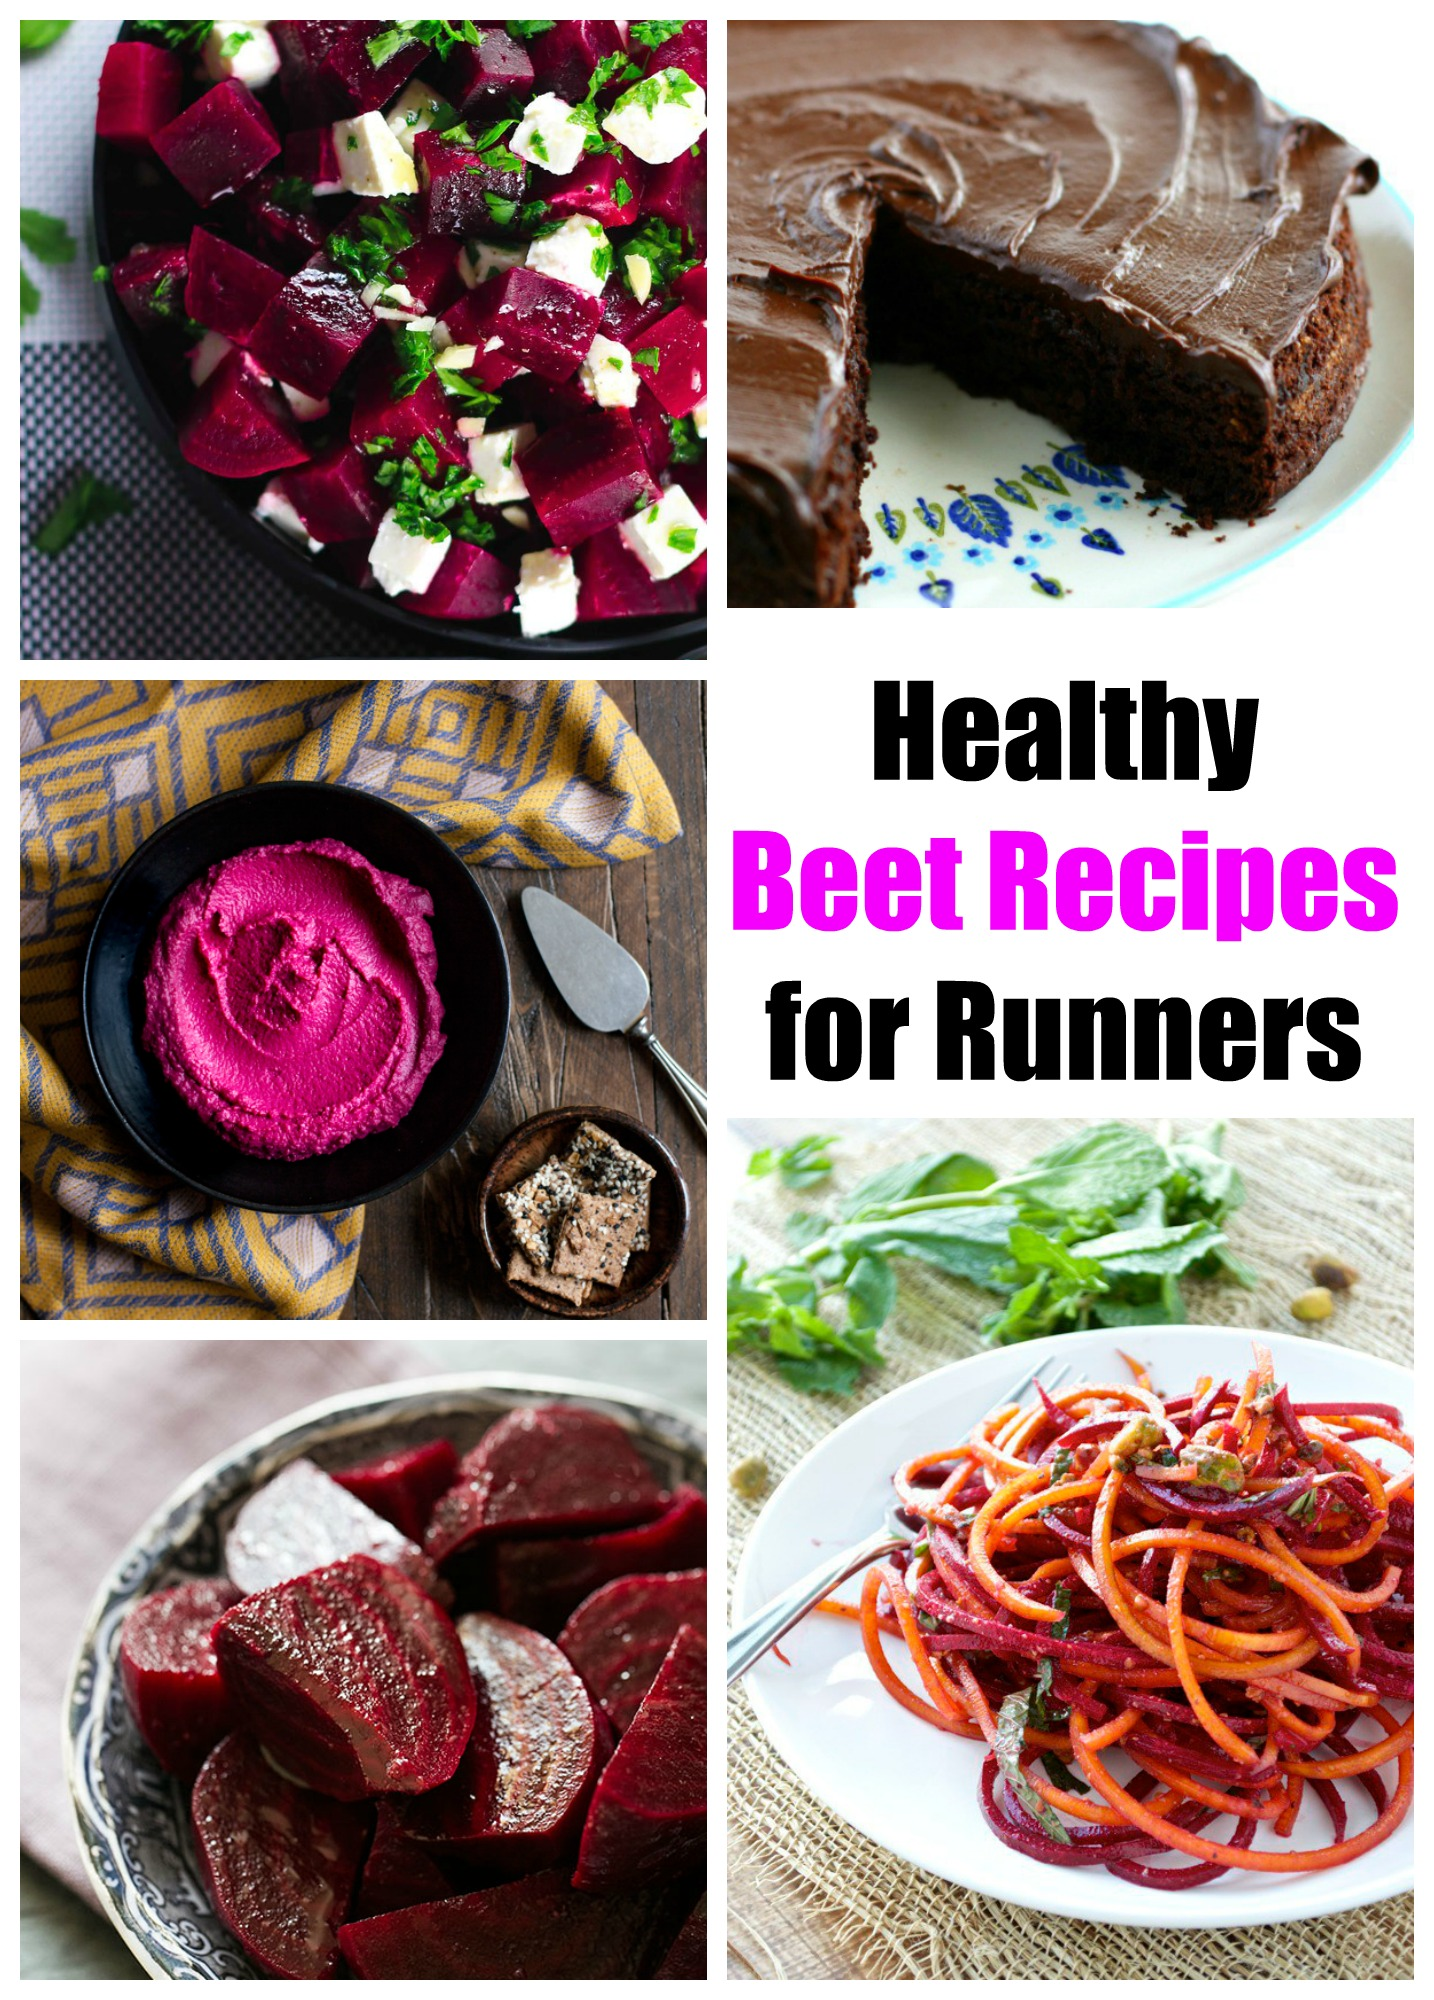 Best Way to Eat Beets